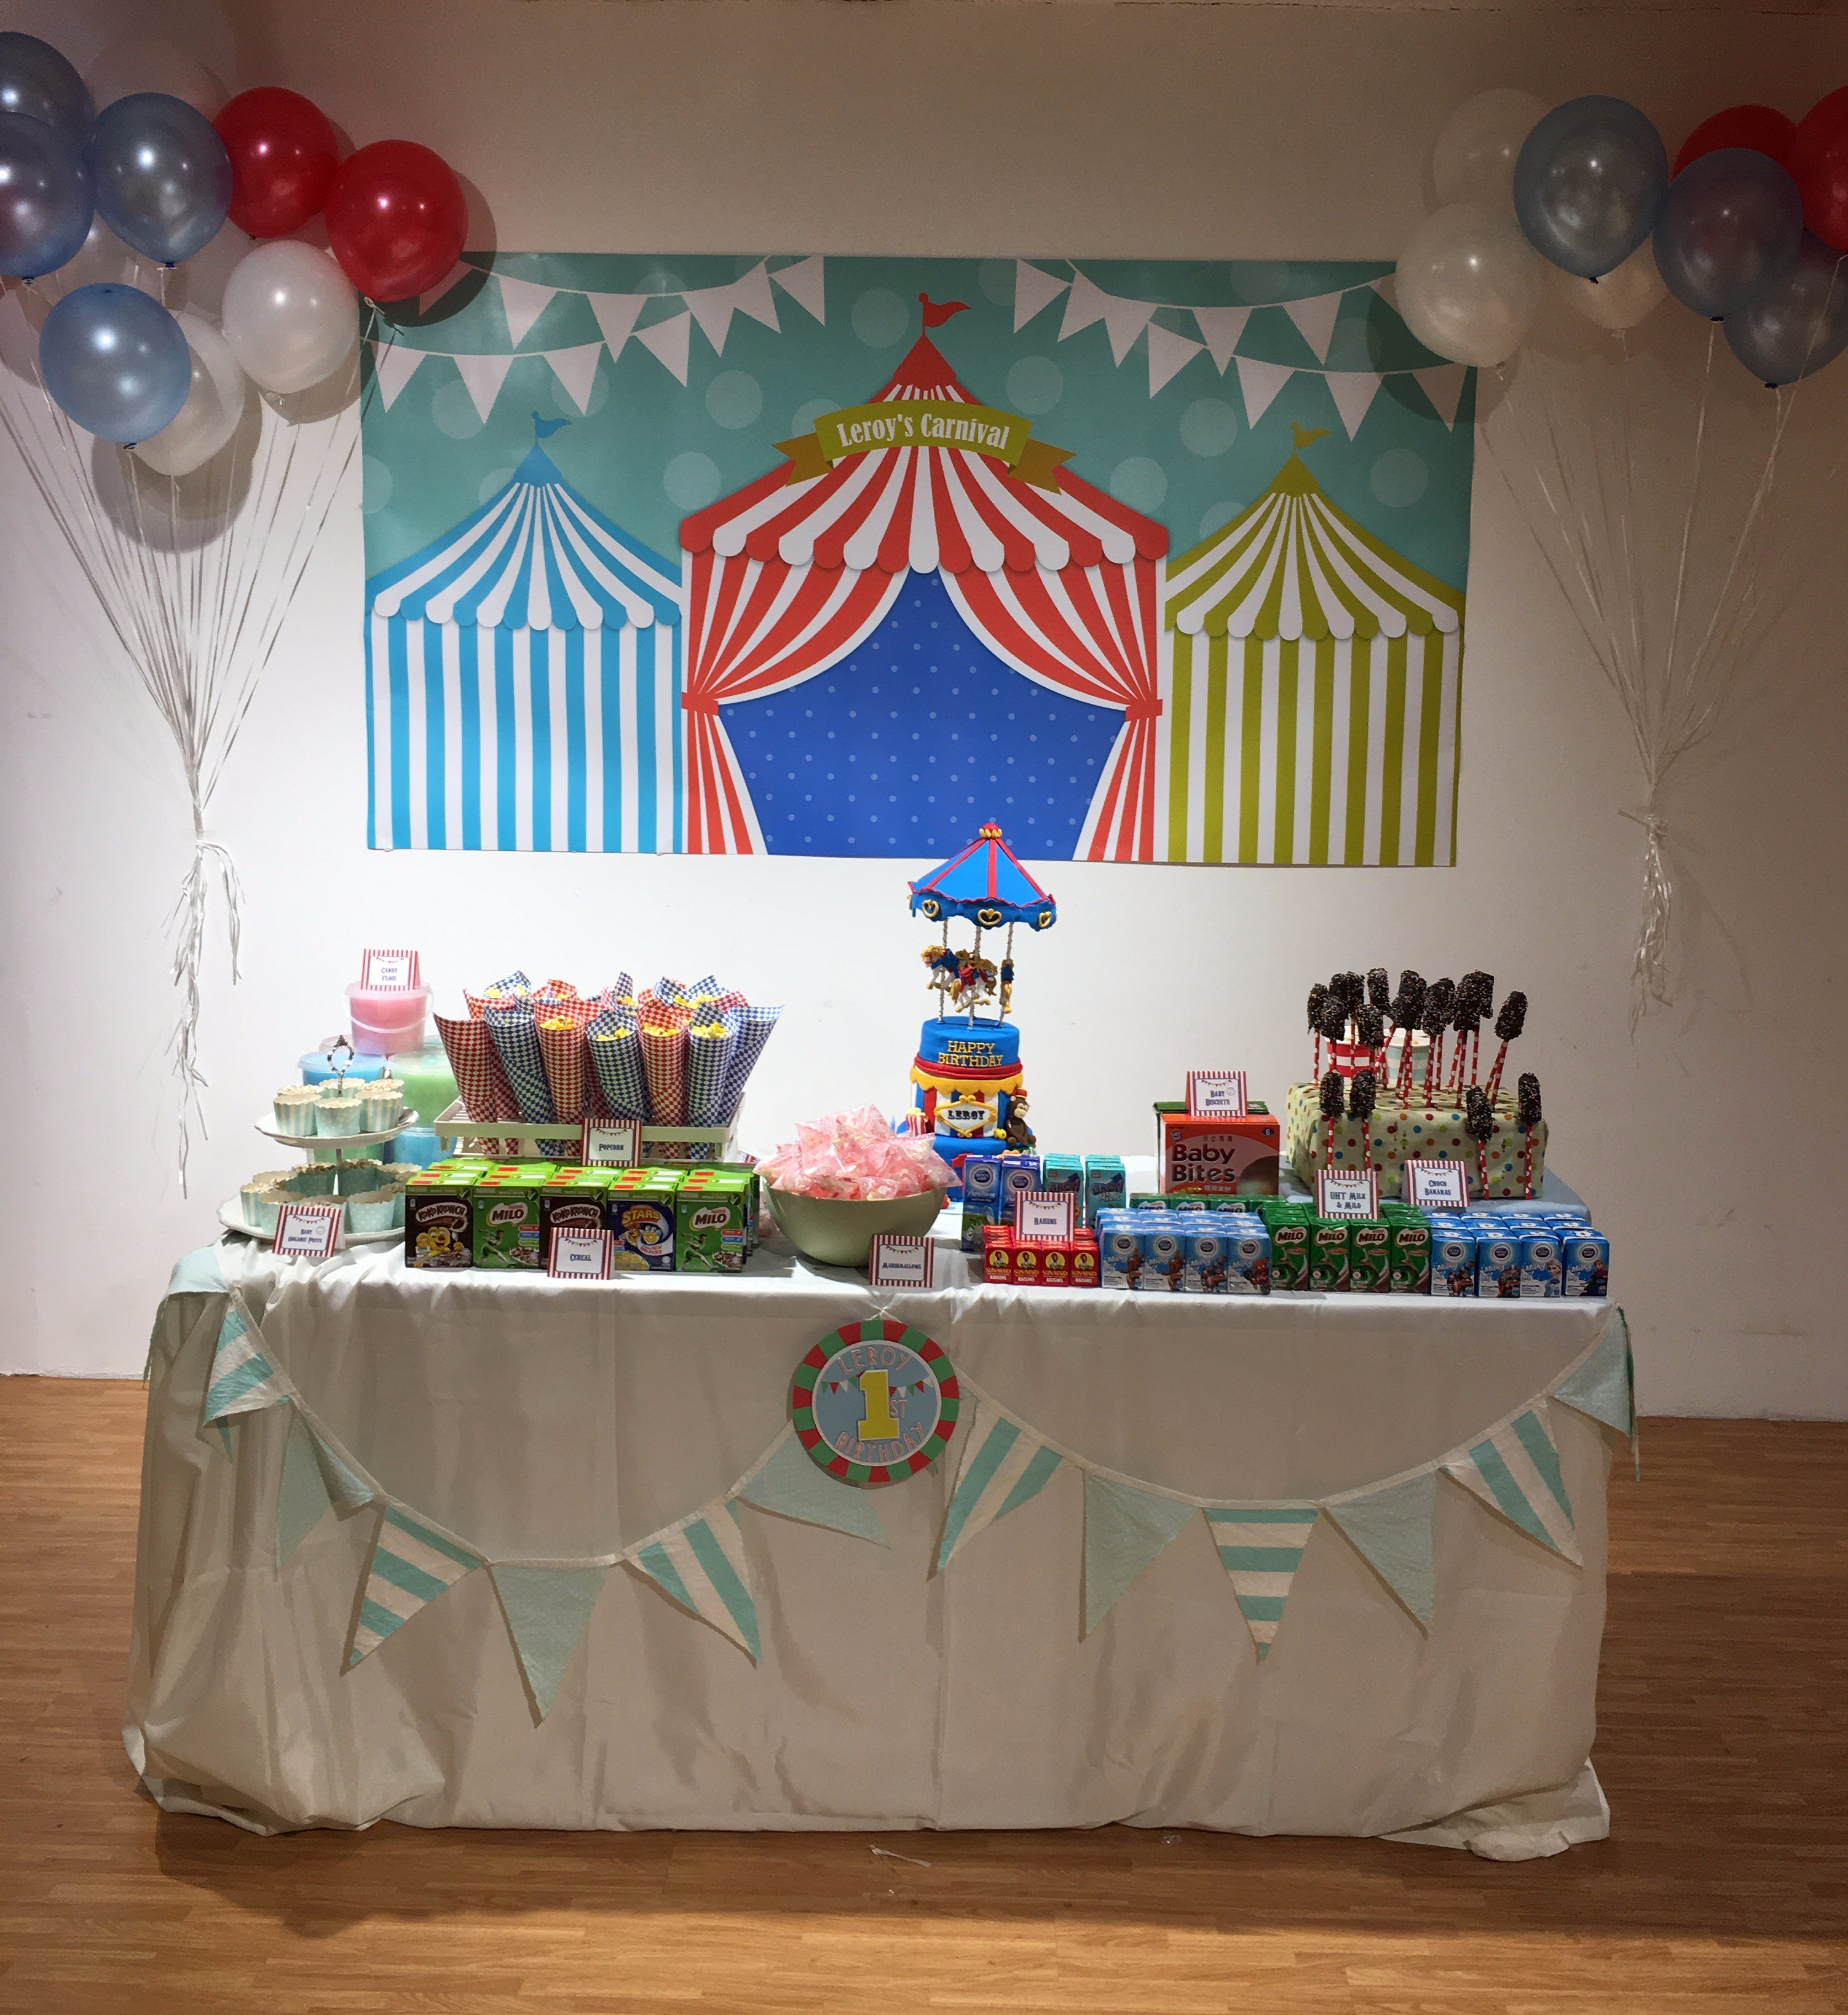 Venue For Baby Shower Singapore Part - 24: Celebrate Kids Birthday Party Venue In Singapore